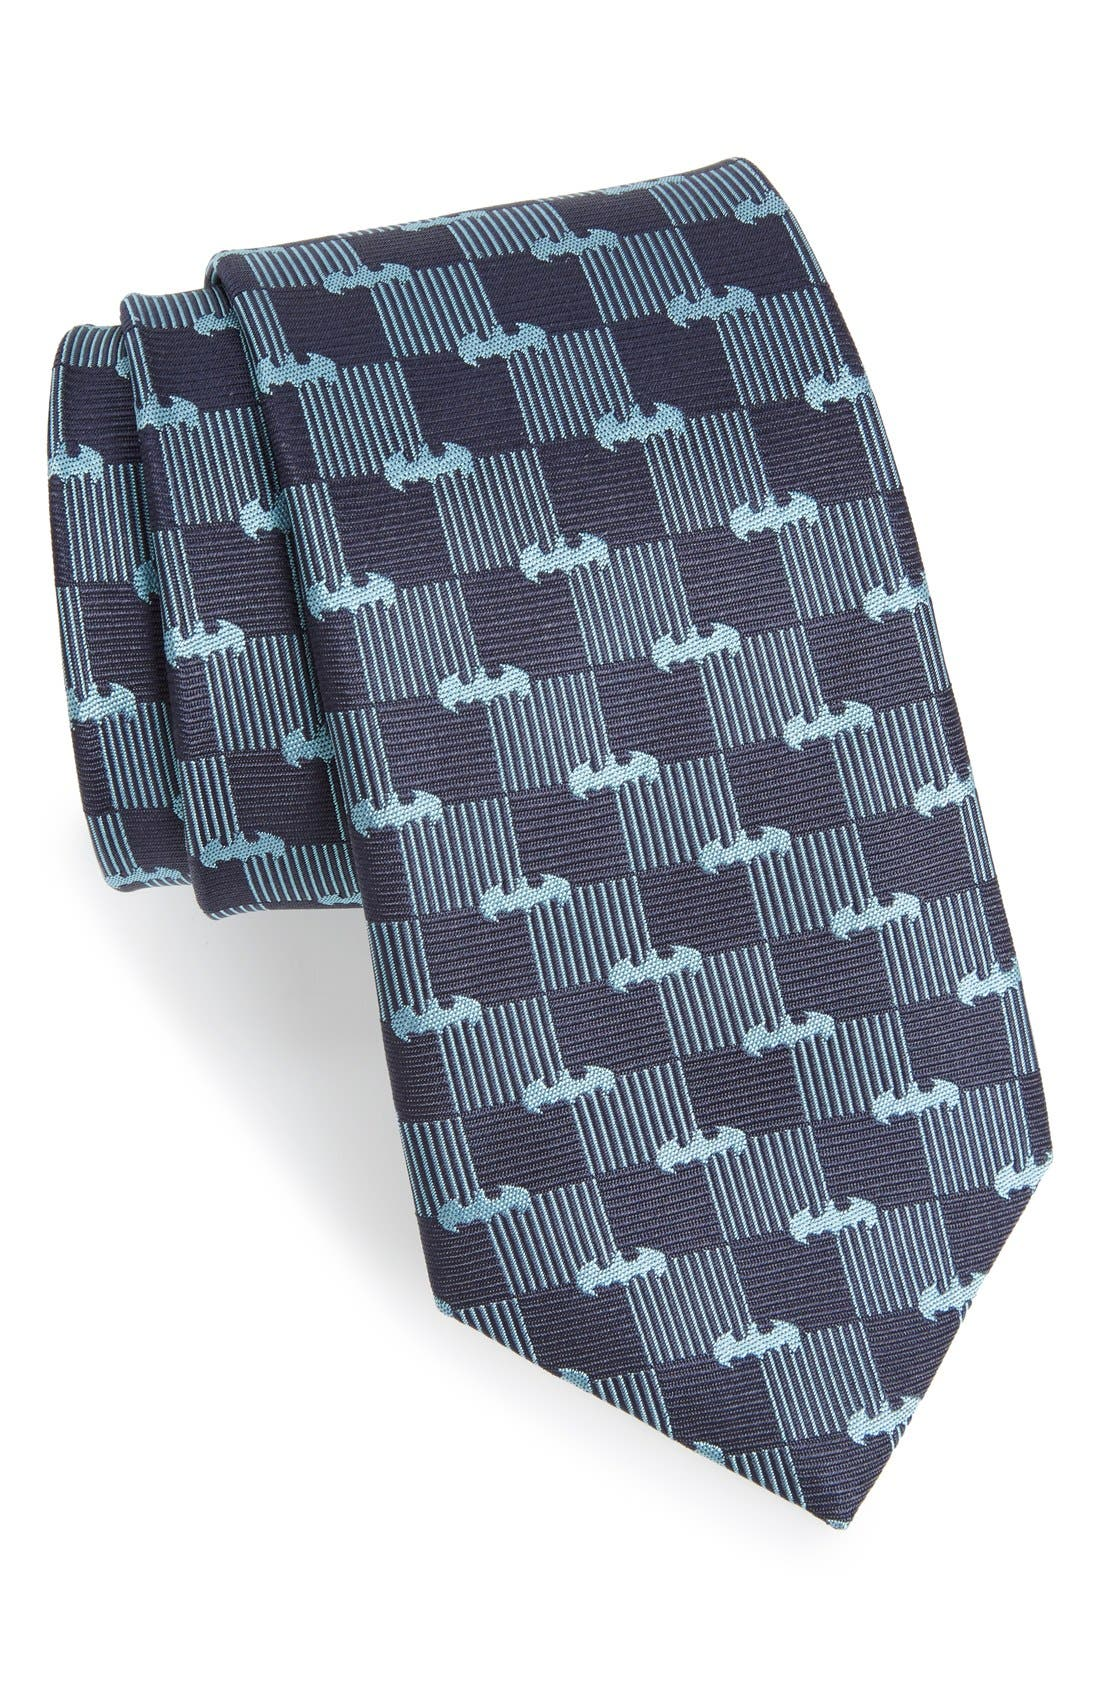 'Batman' Silk Tie,                             Main thumbnail 1, color,                             400